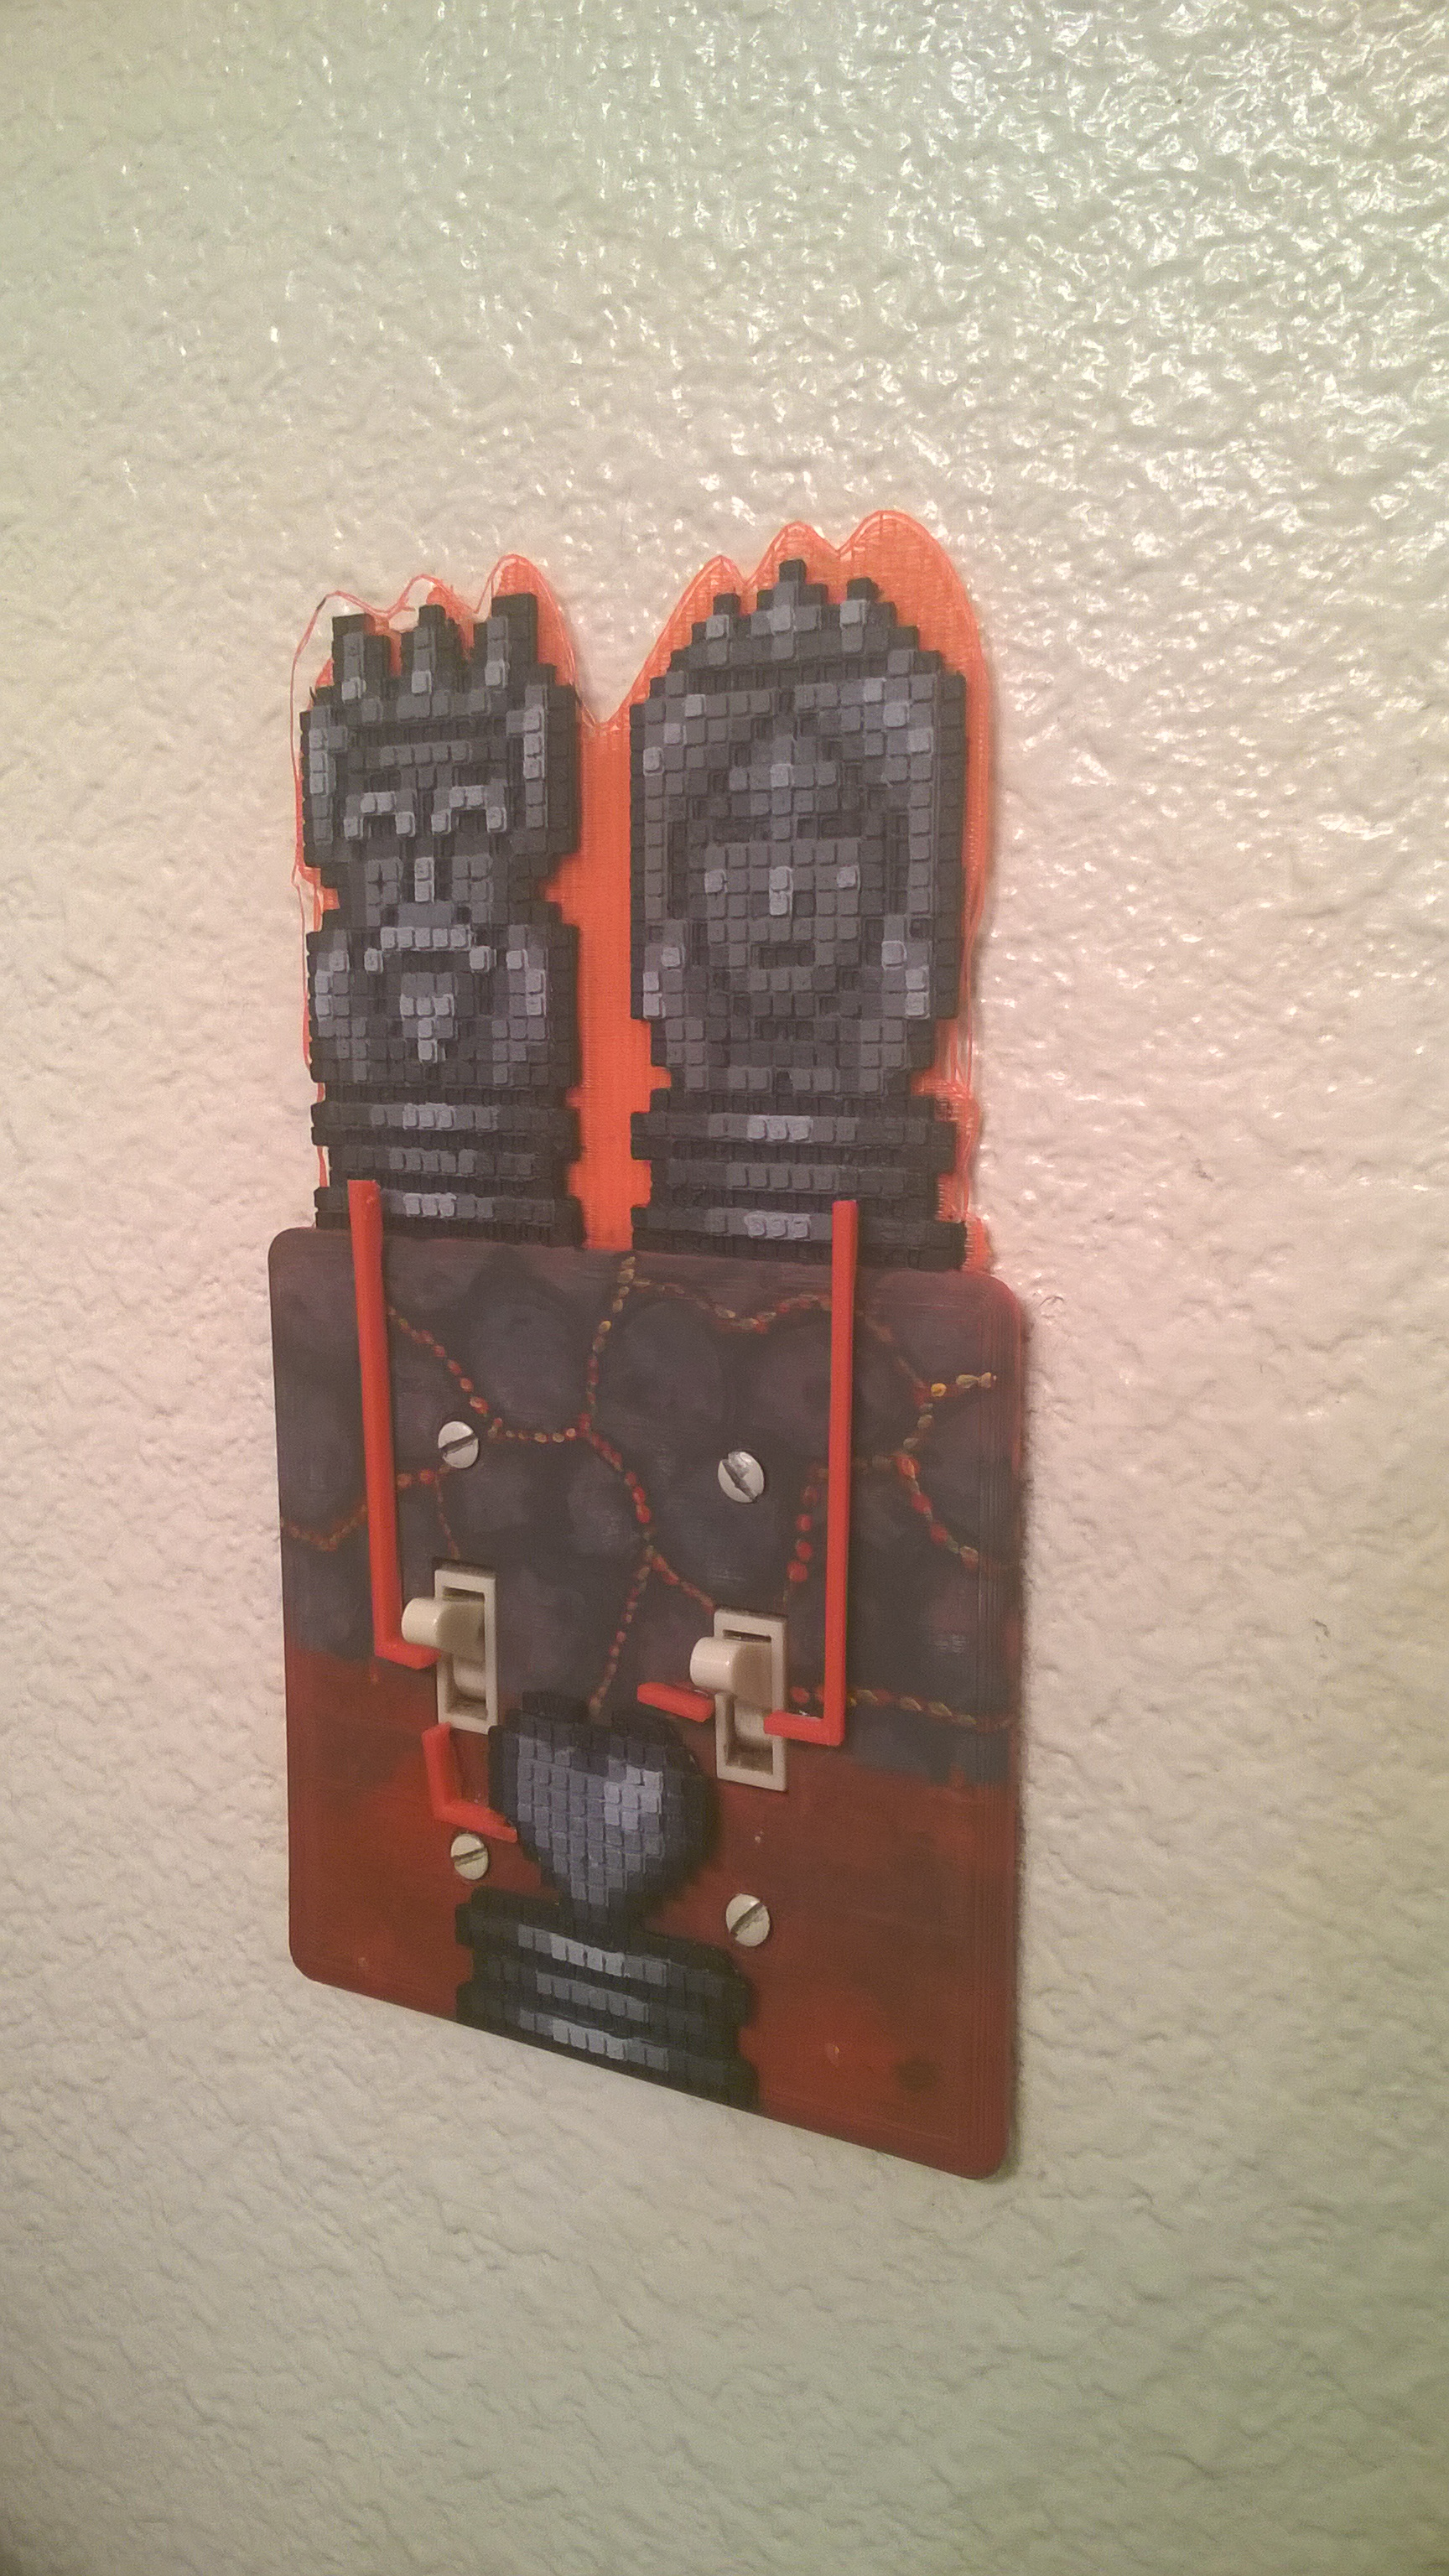 Terraria Statue Switch Plate Cover 2 By Abcbaker Thingiverse Wiring Heart Statues Nov 1 2016 View Original